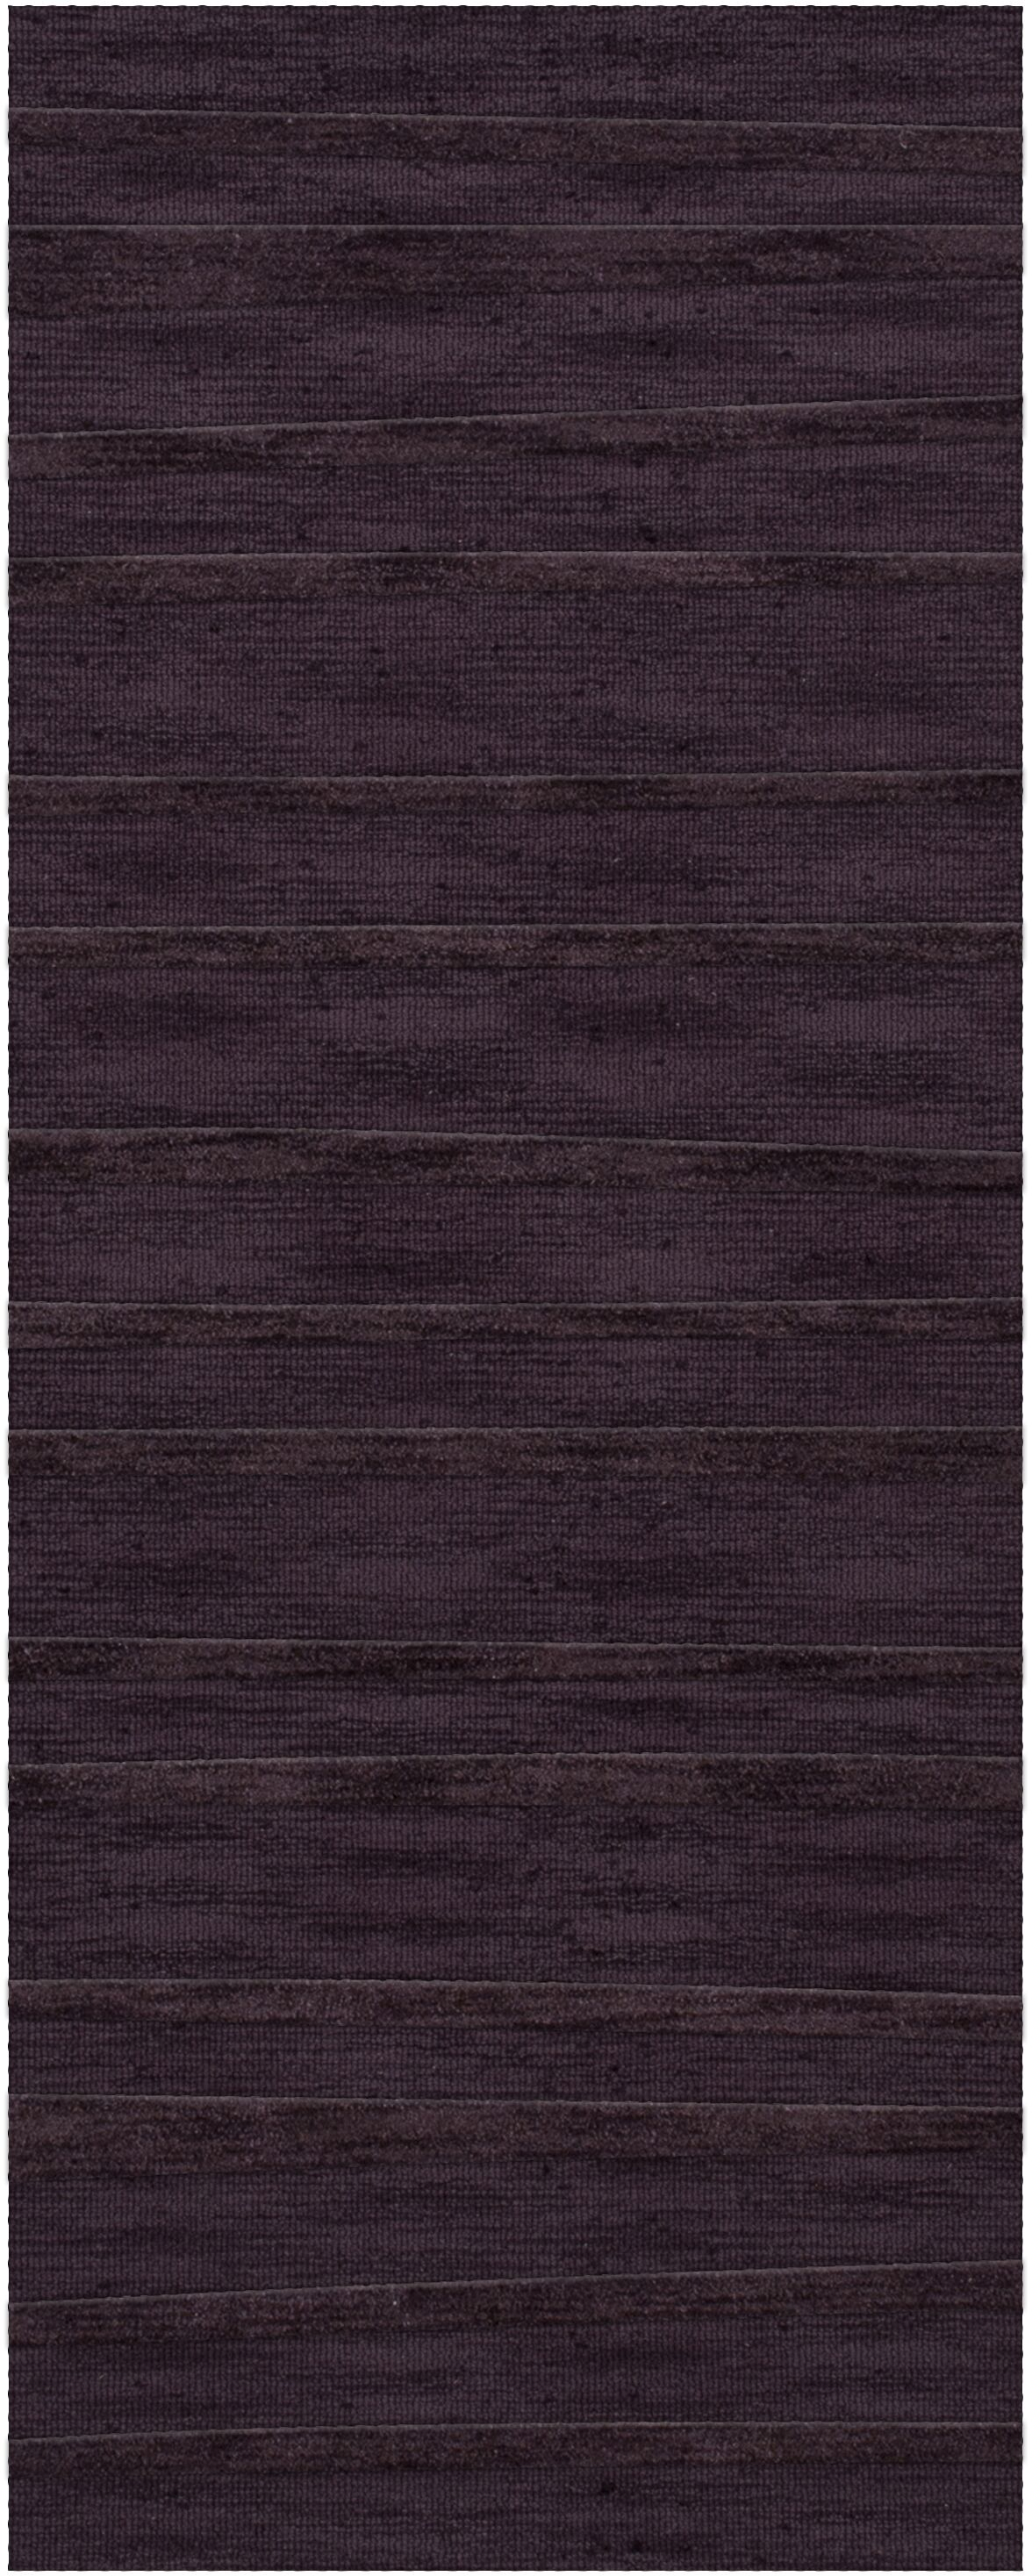 Dover Grape Ice Area Rug Rug Size: Runner 2'6